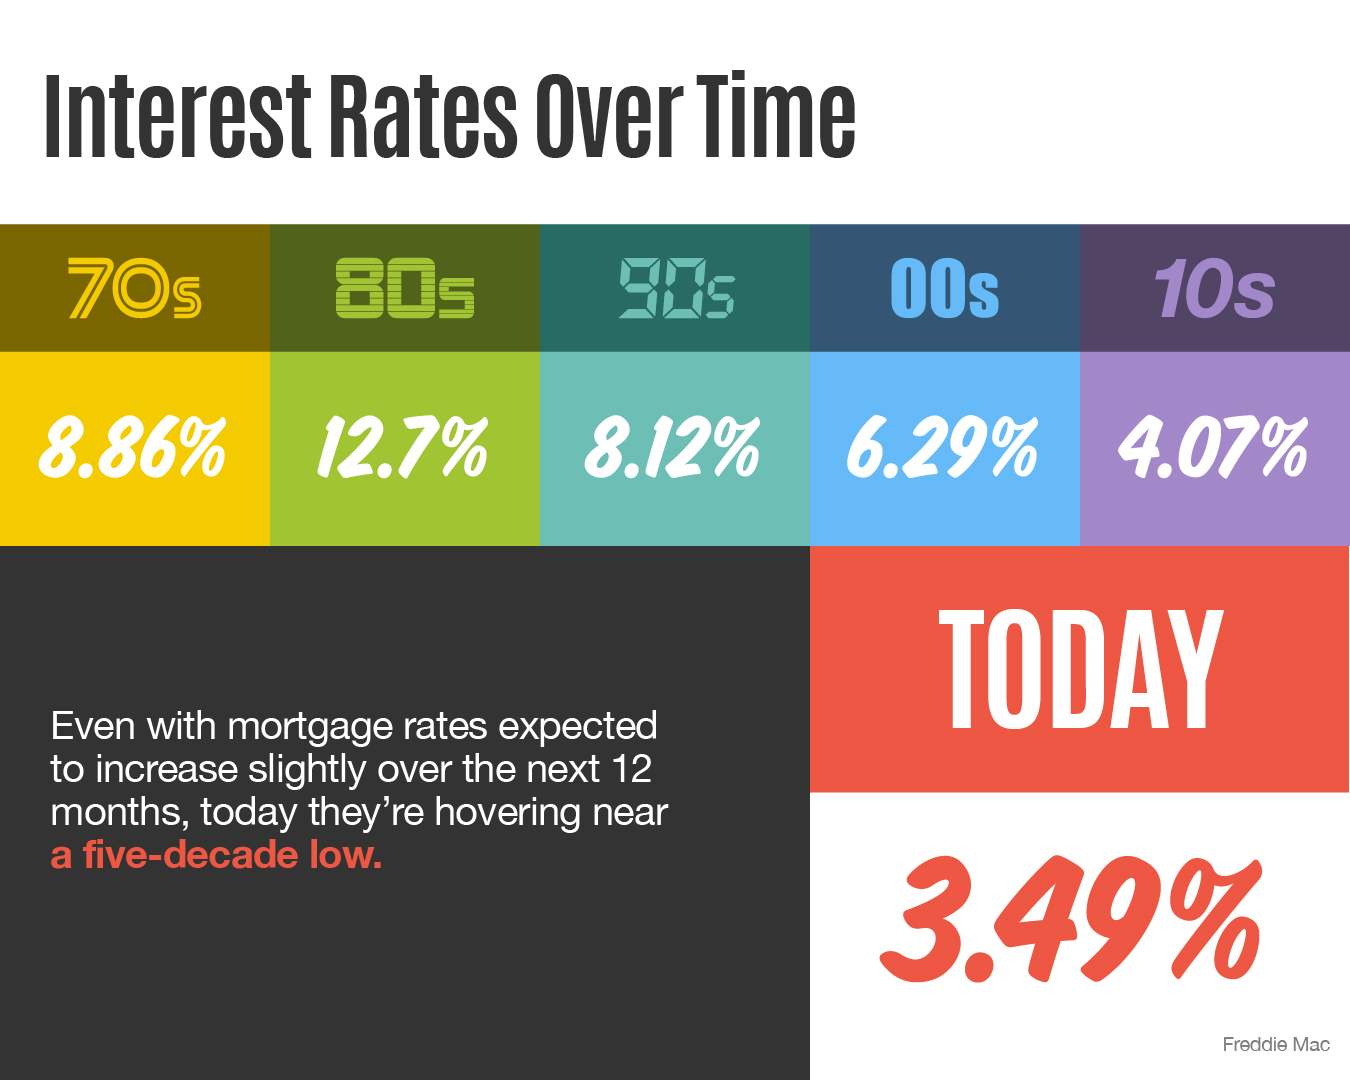 Infographic on mortgage interest rates over time